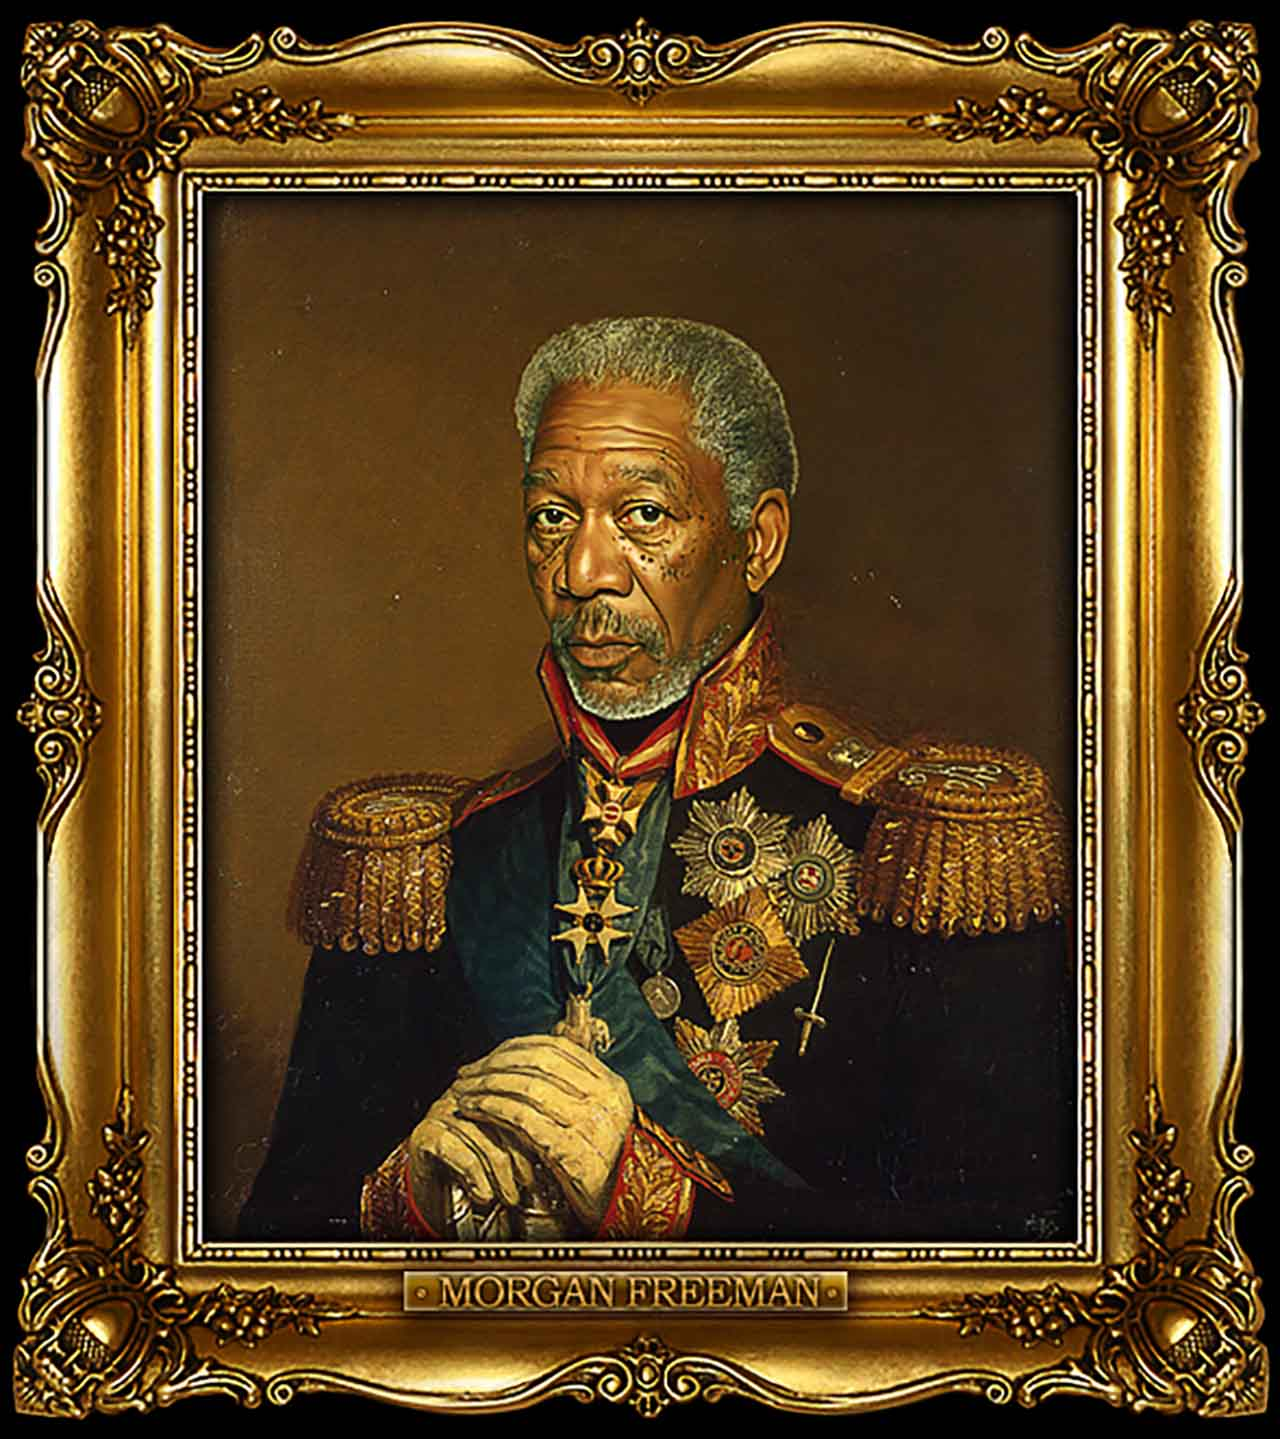 Artist Turns Famous Actors Into Russian Generals - Morgan Freeman